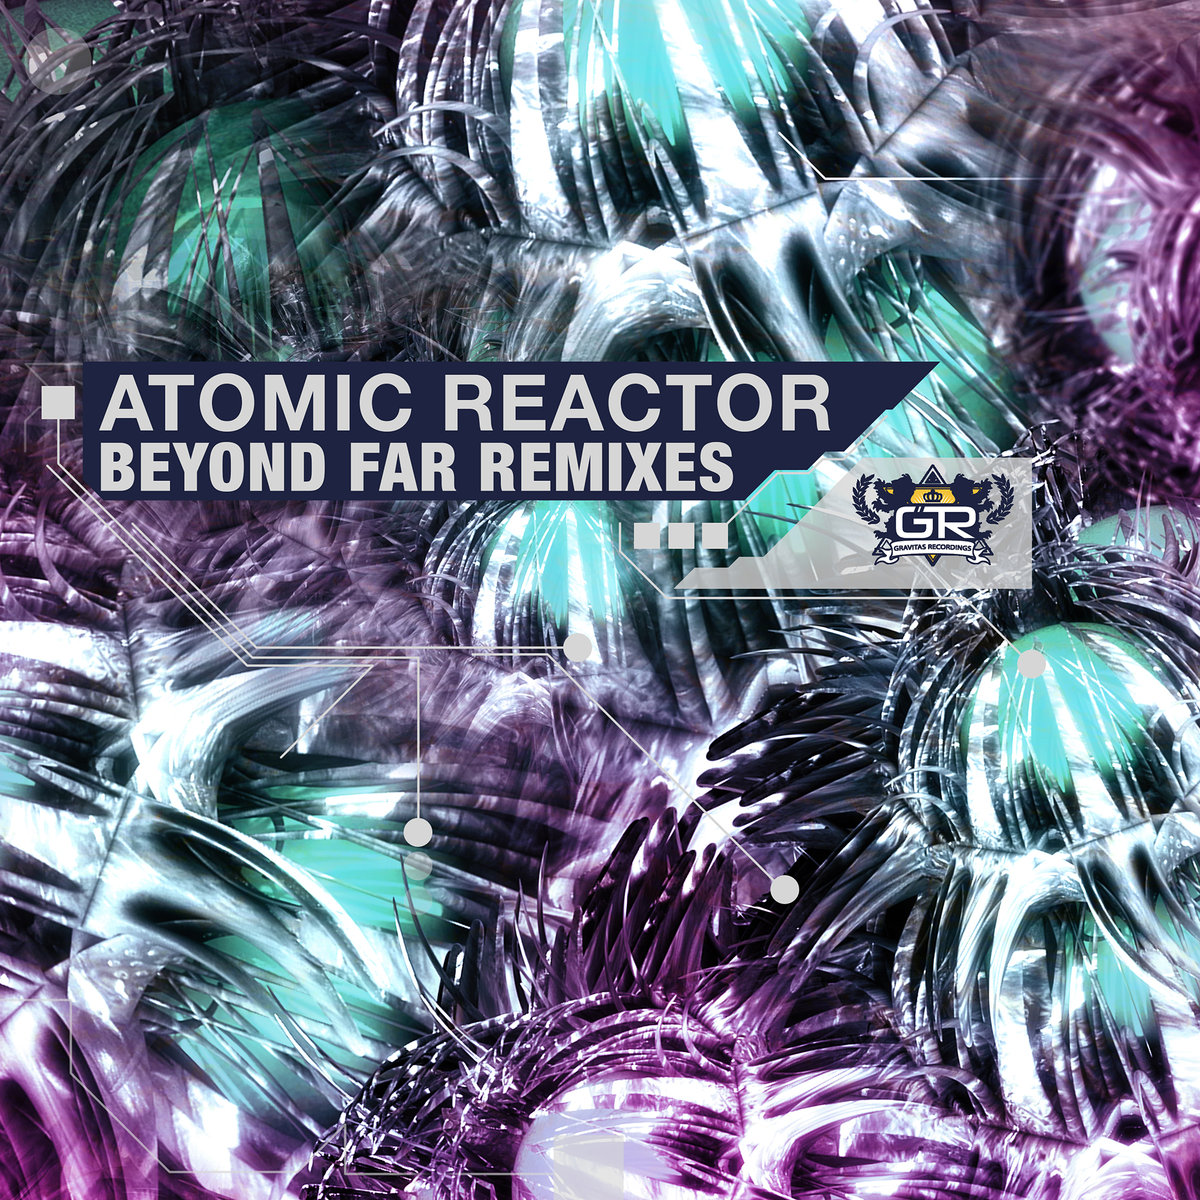 Atomic Reactor - Beyond Far Remixes @ 'Beyond Far Remixes' album (Austin)